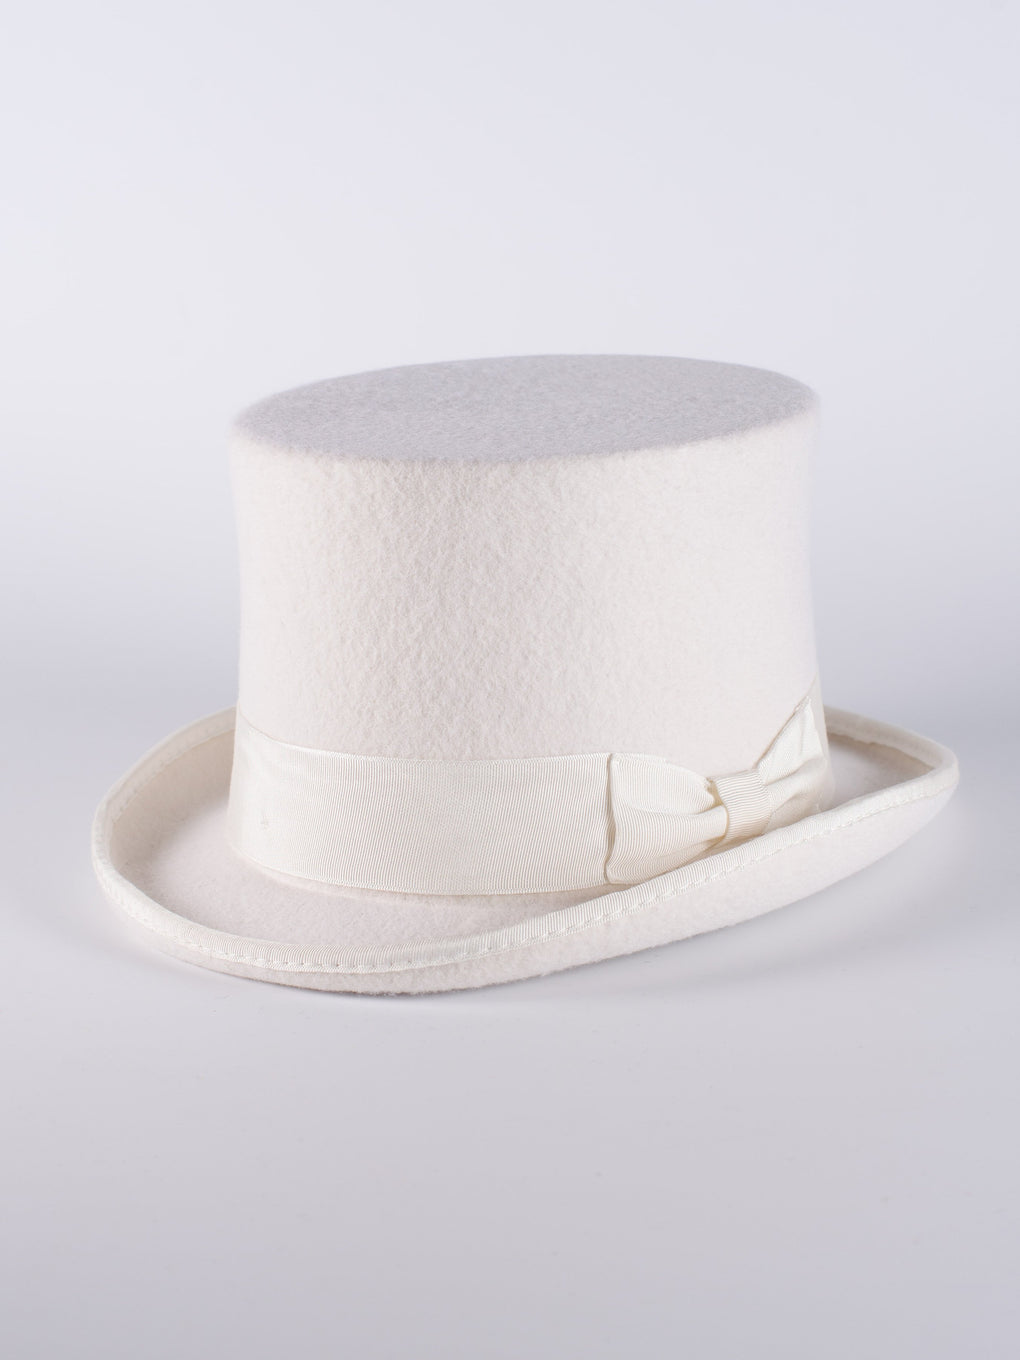 Top Hat White - Audace Manifesto